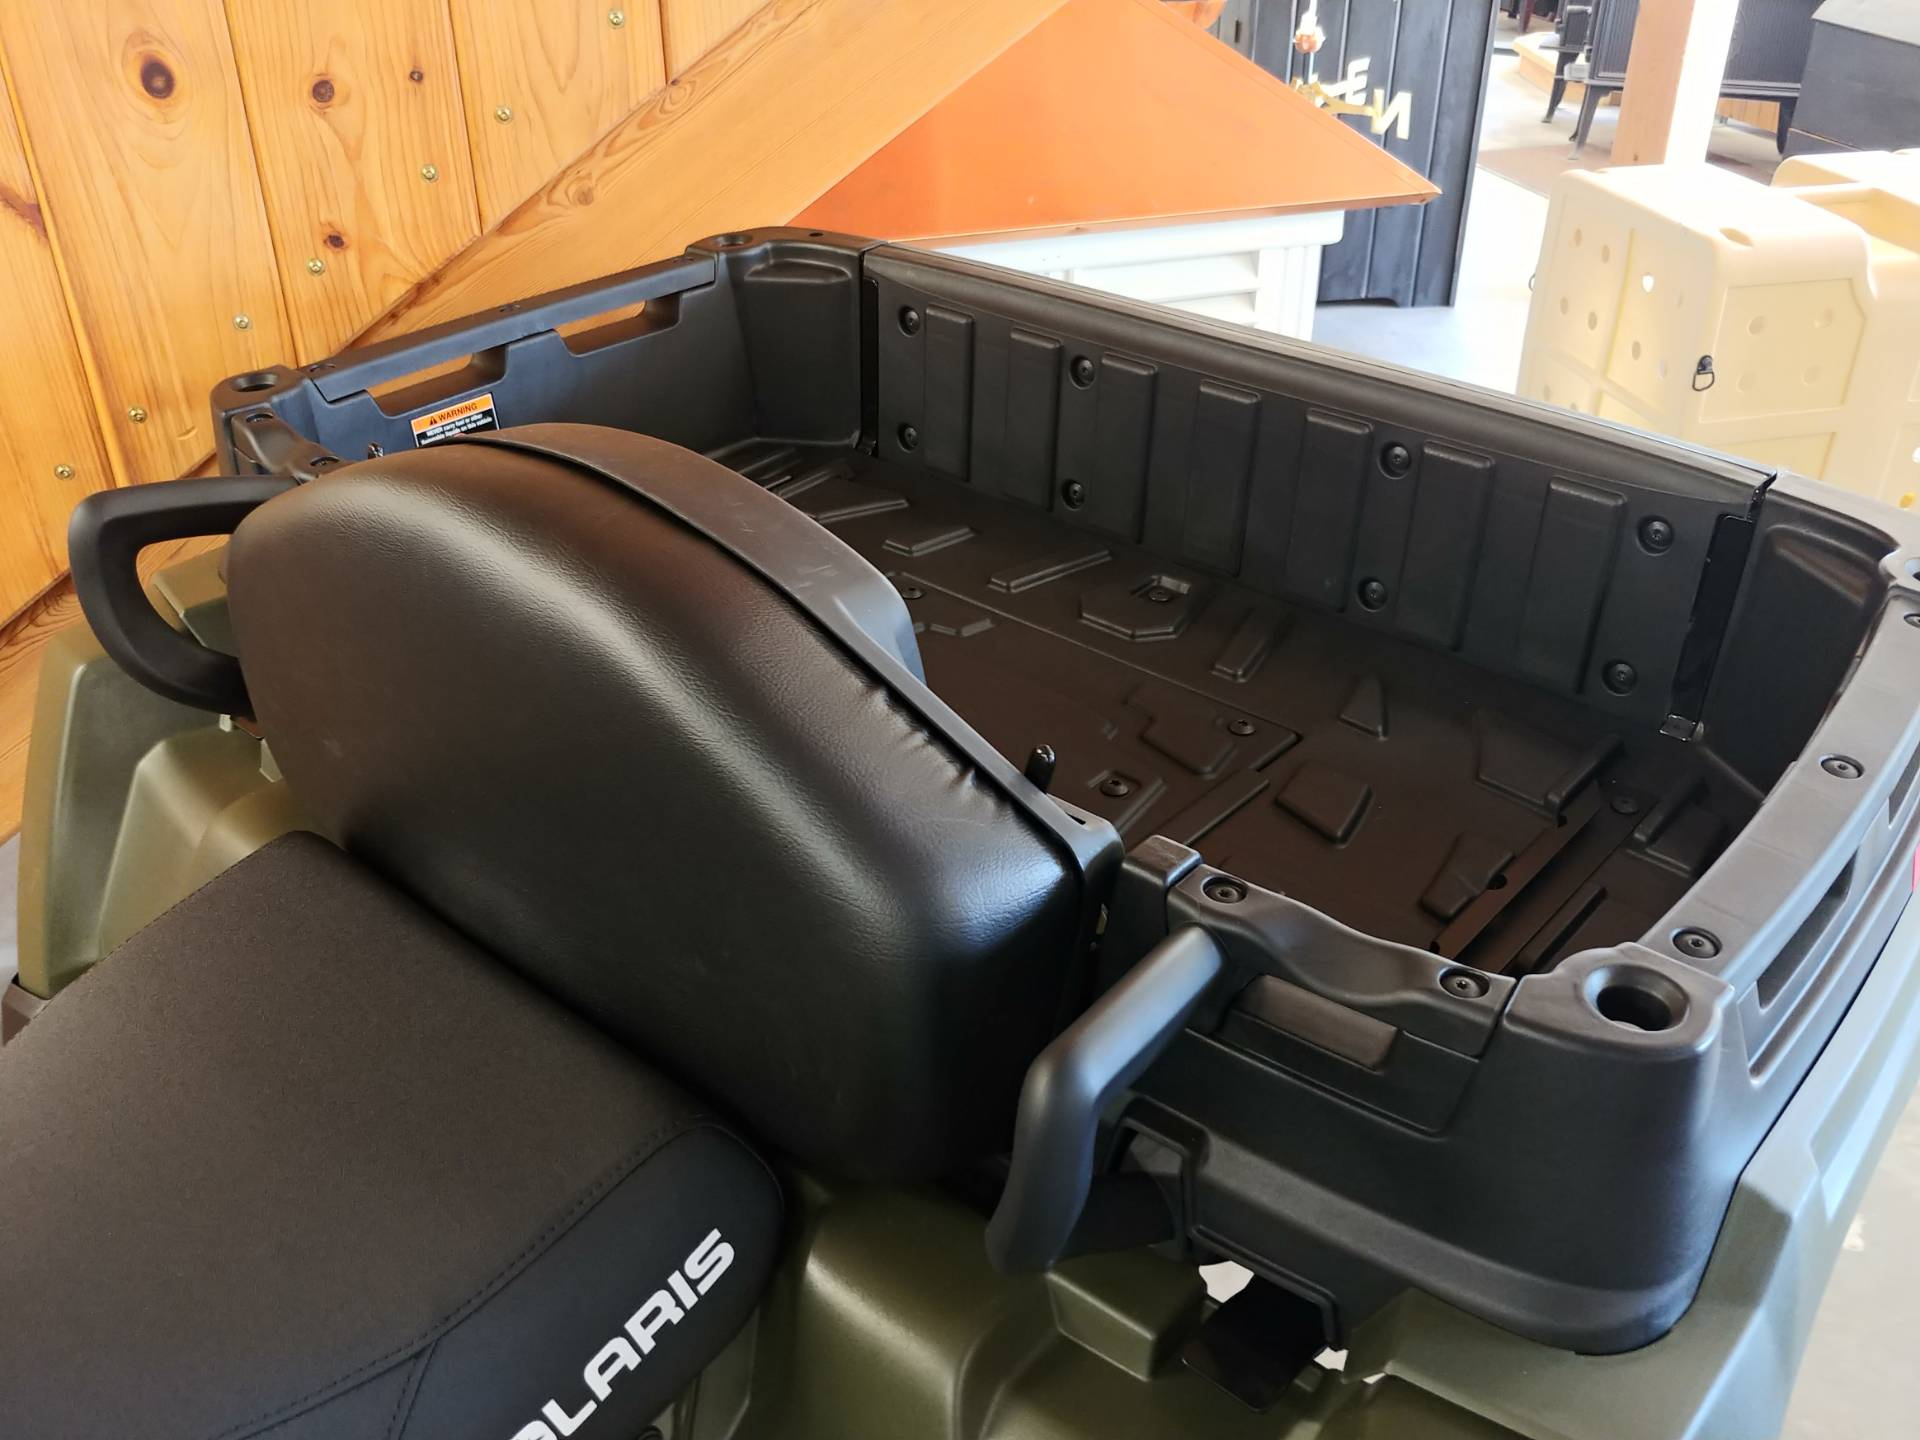 2019 Polaris Sportsman X2 570 in Center Conway, New Hampshire - Photo 3